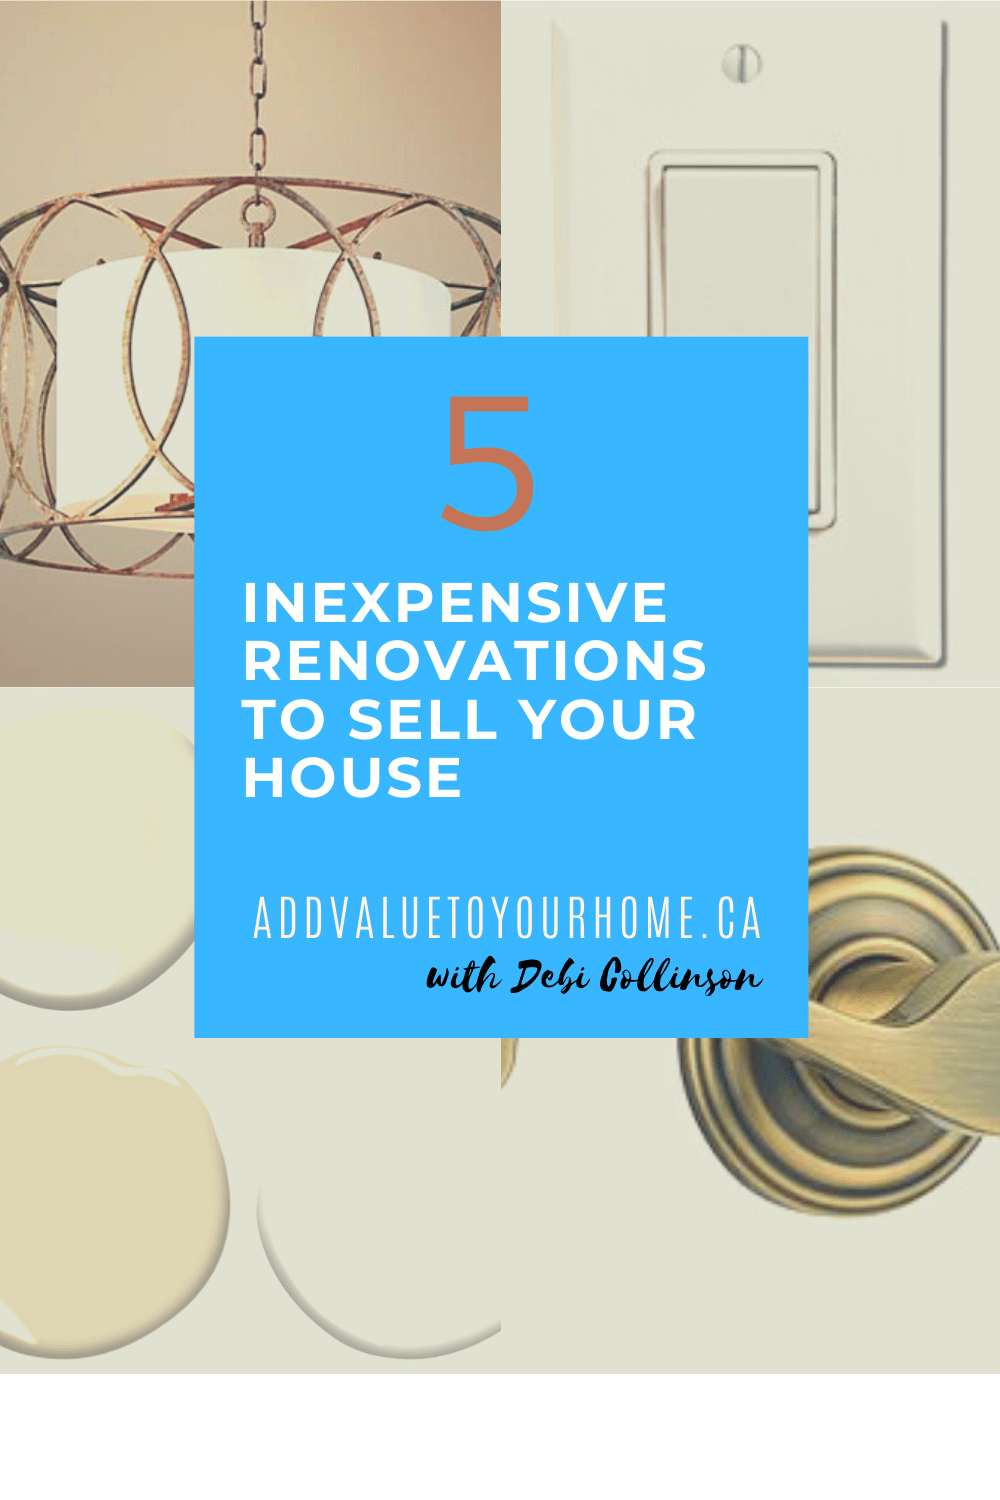 5-inexpensive-renovations-sell-your-house-add-value-to-your-home-debi-collinson